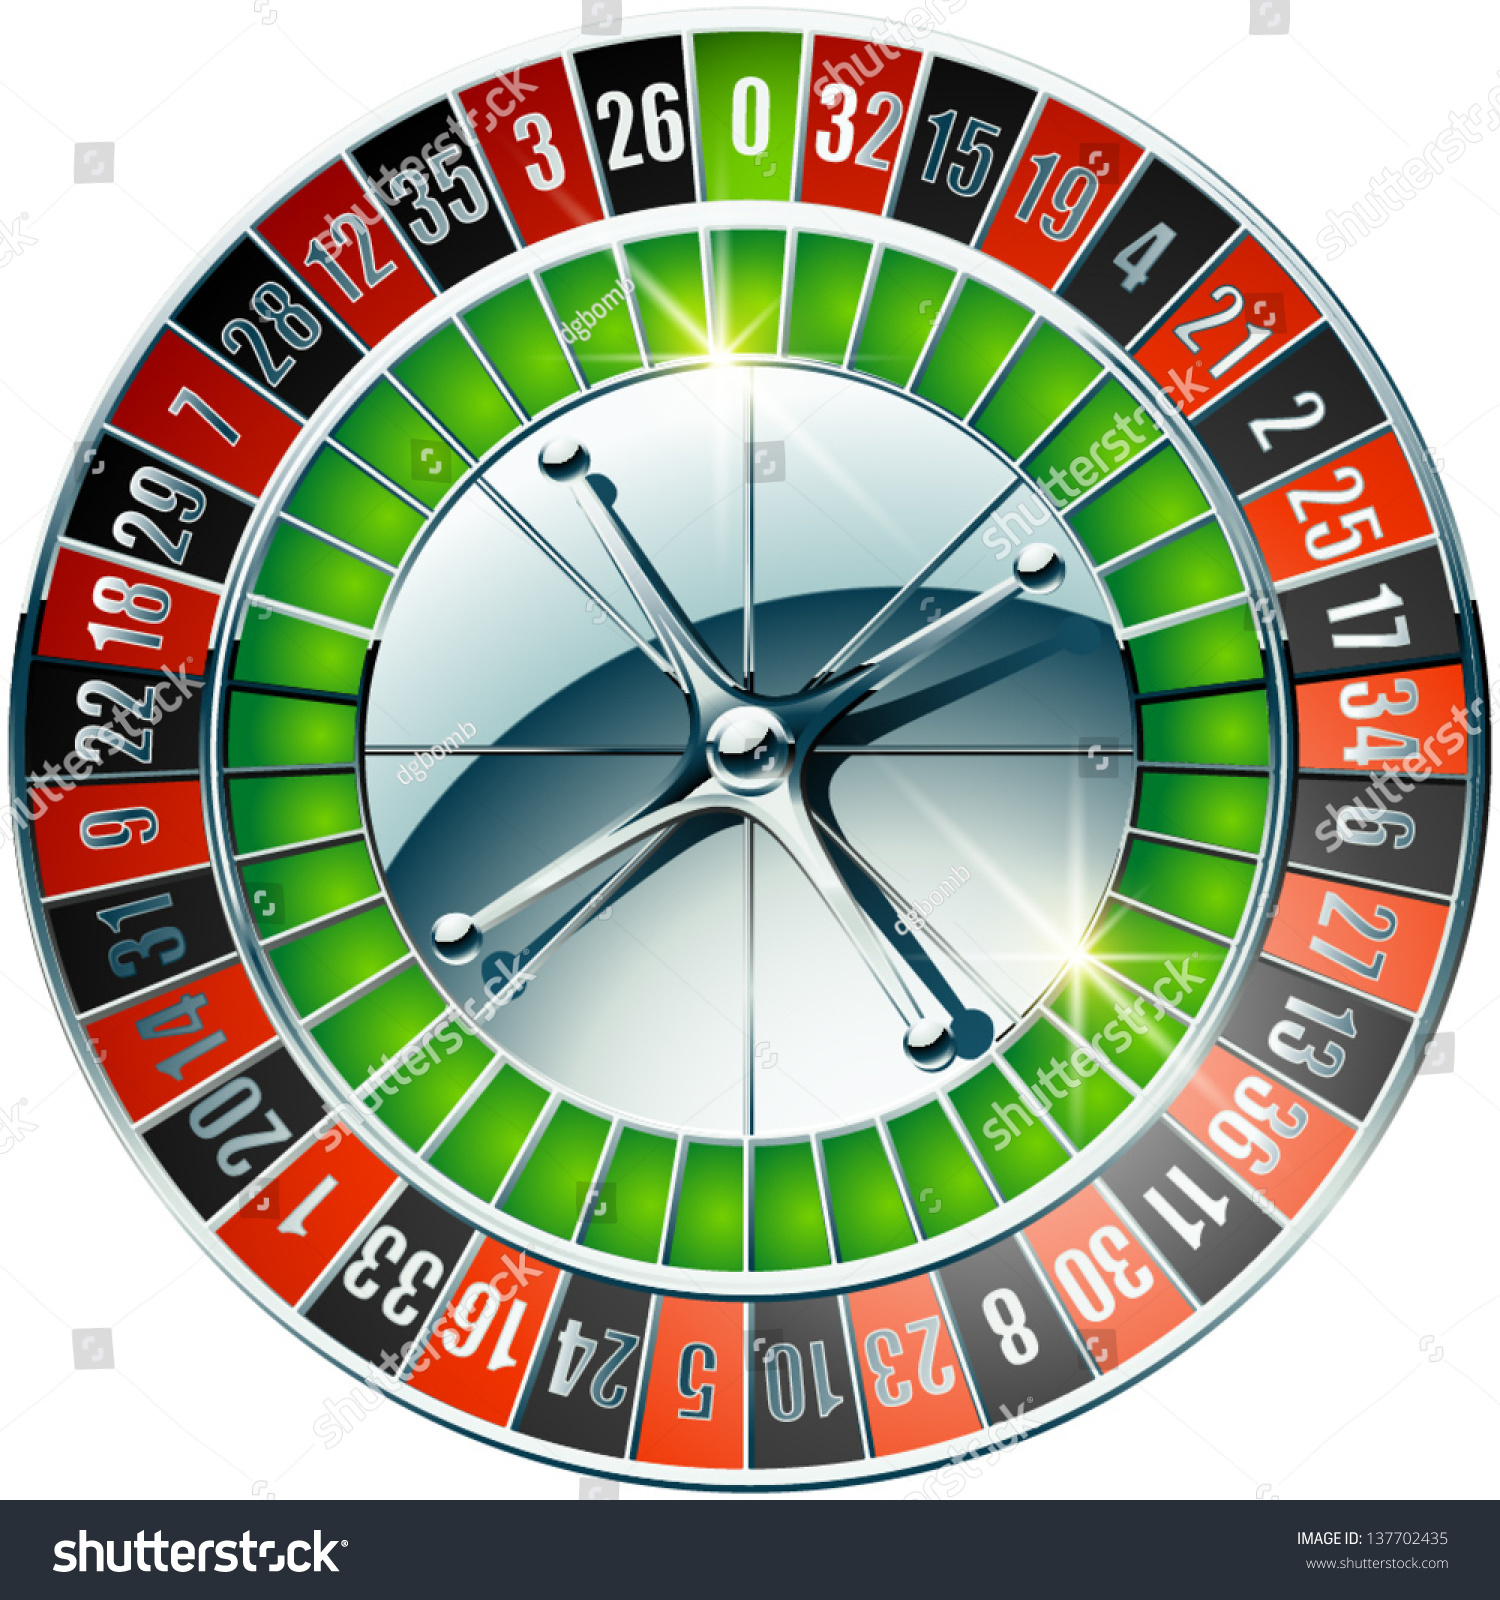 what size roulette wheel do casinos use